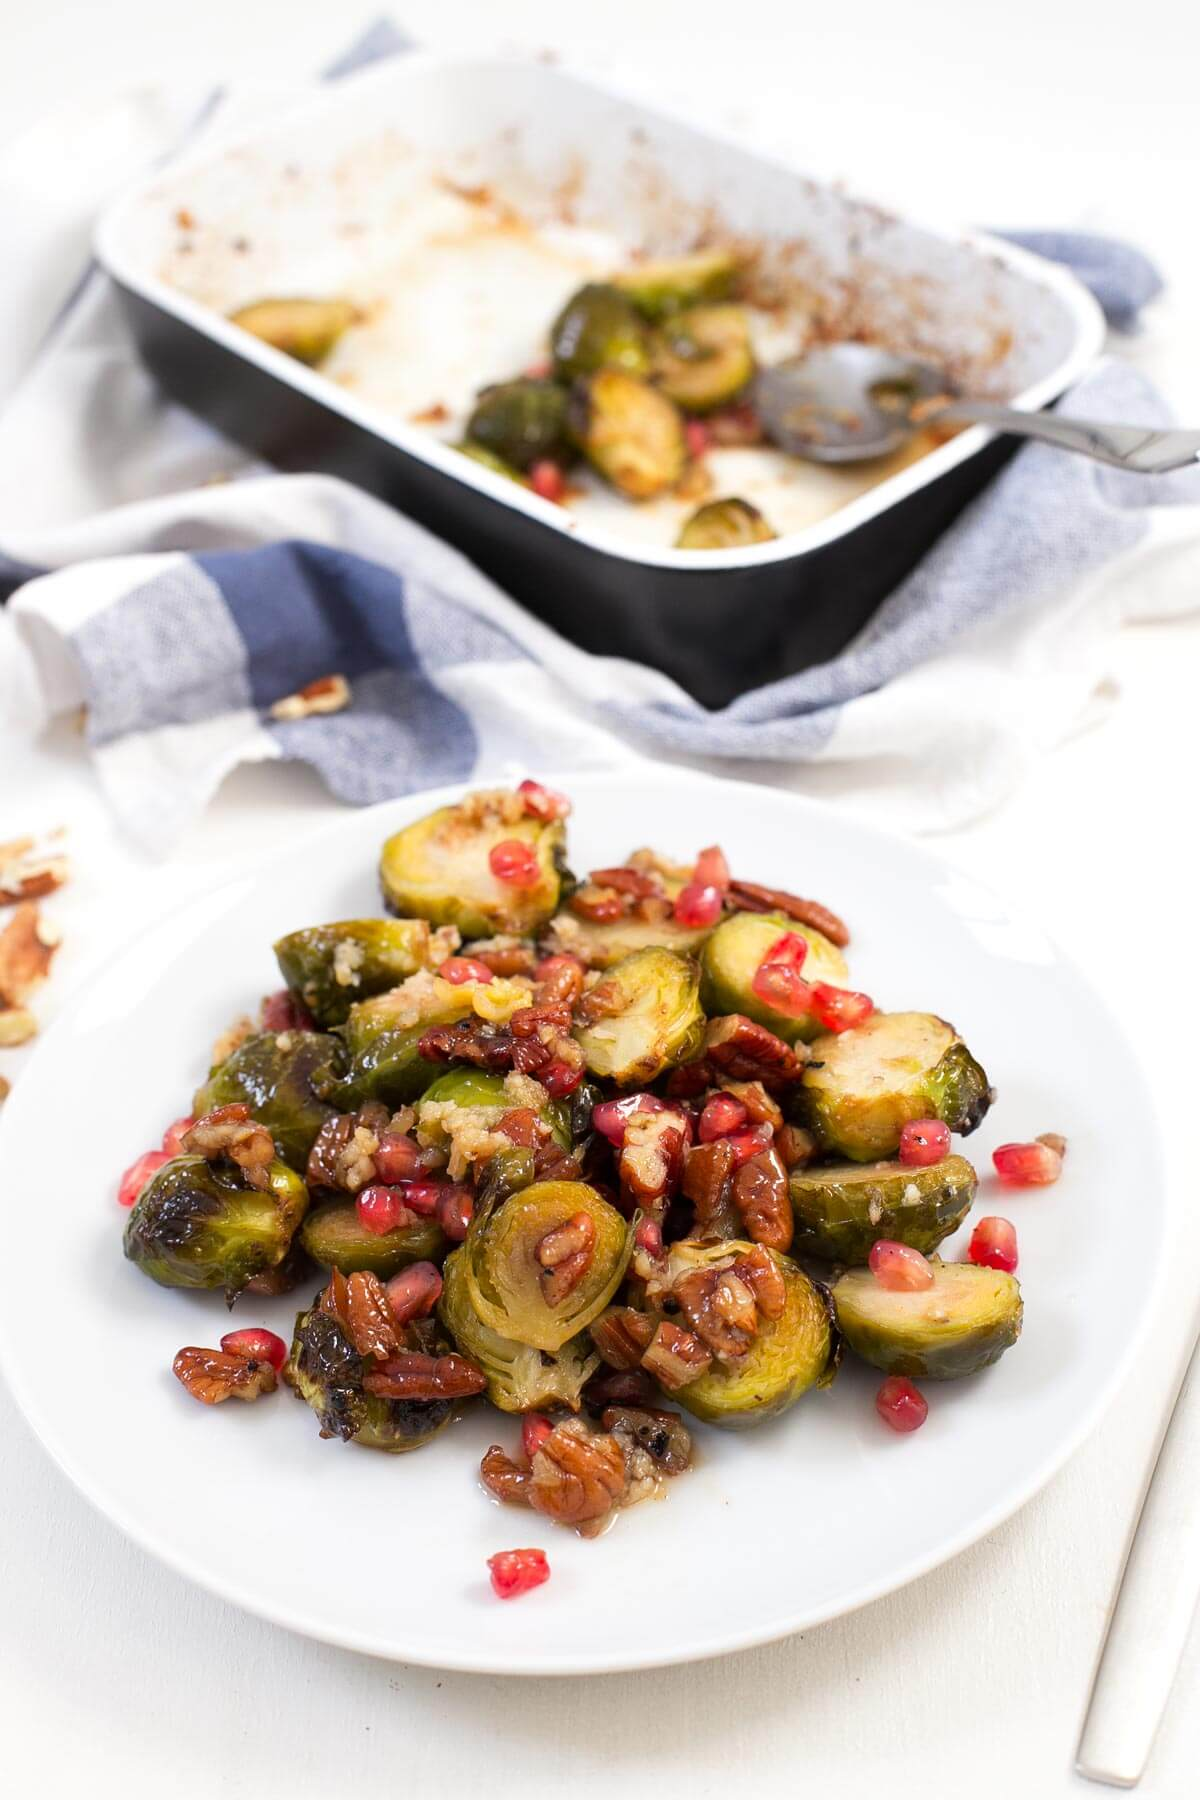 Baked Brussels Sprouts. - Baked Brussels sprouts are a simple and delicious side dish. Although they have a terrible reputation, cabbages can be delicious if we know how to prepare them.